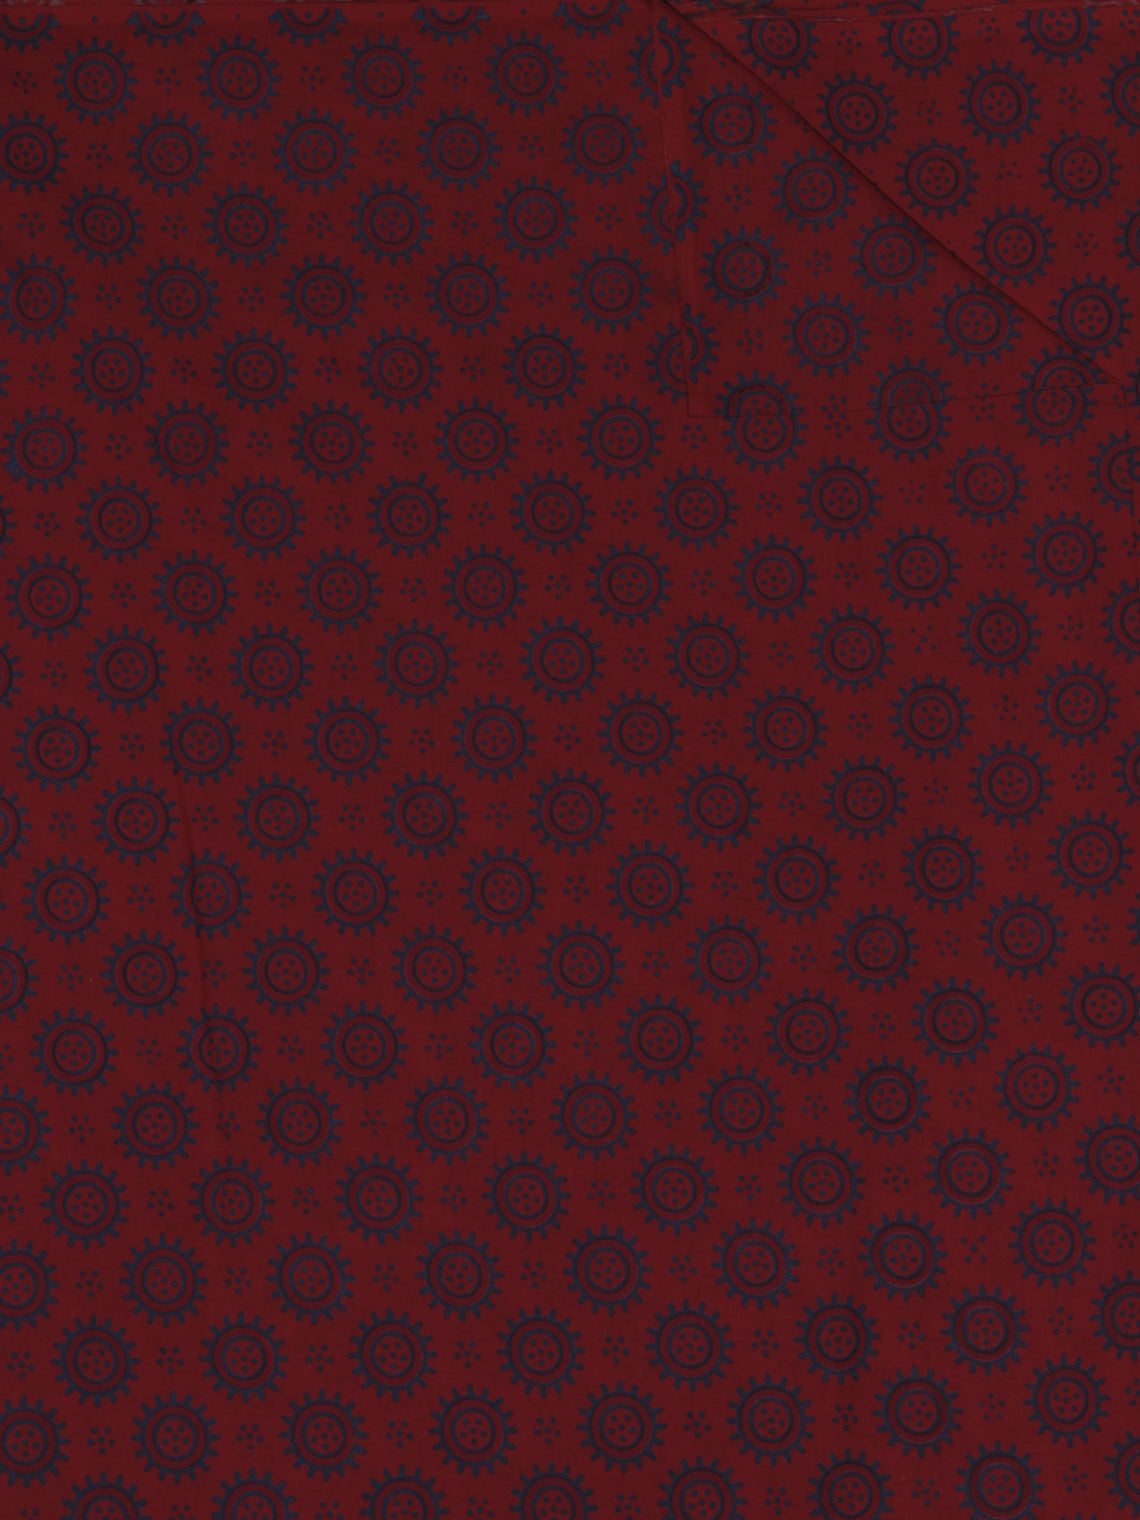 Maroon Grey Ajrakh Screen Printed Cotton Fabric Per Meter - F0916693